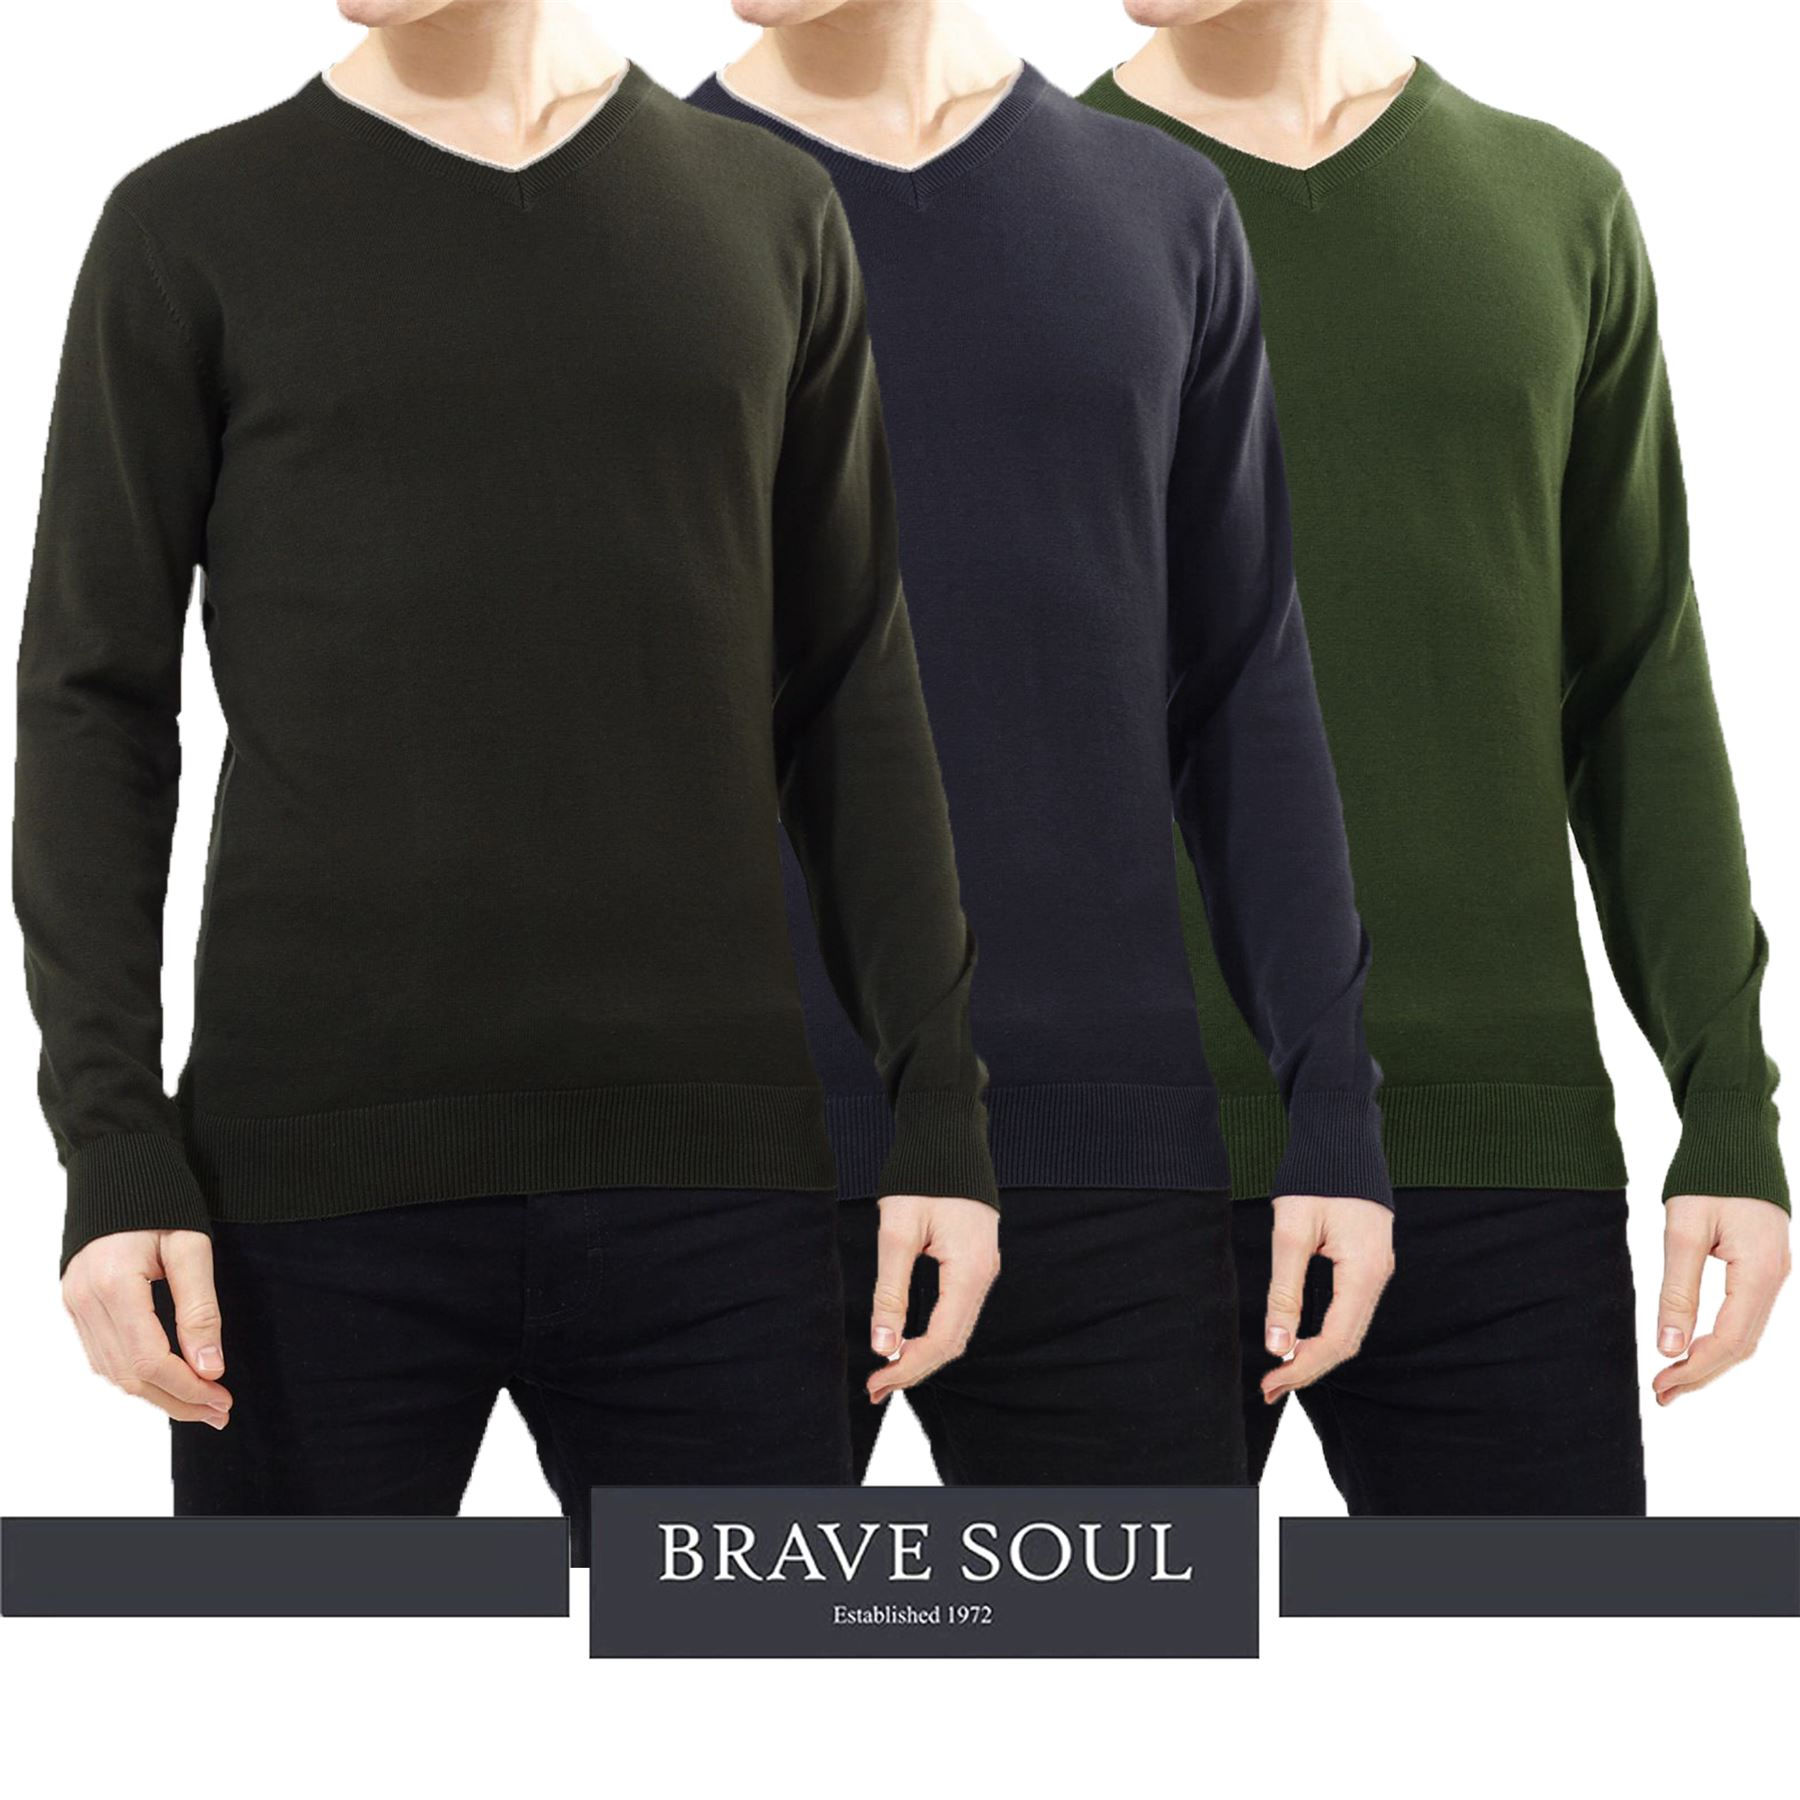 1a2cf41807 Details about Mens Brave Soul Long Sleeve Plain Ribbed Trim V Neck Thin  Knit Jumper Sweater